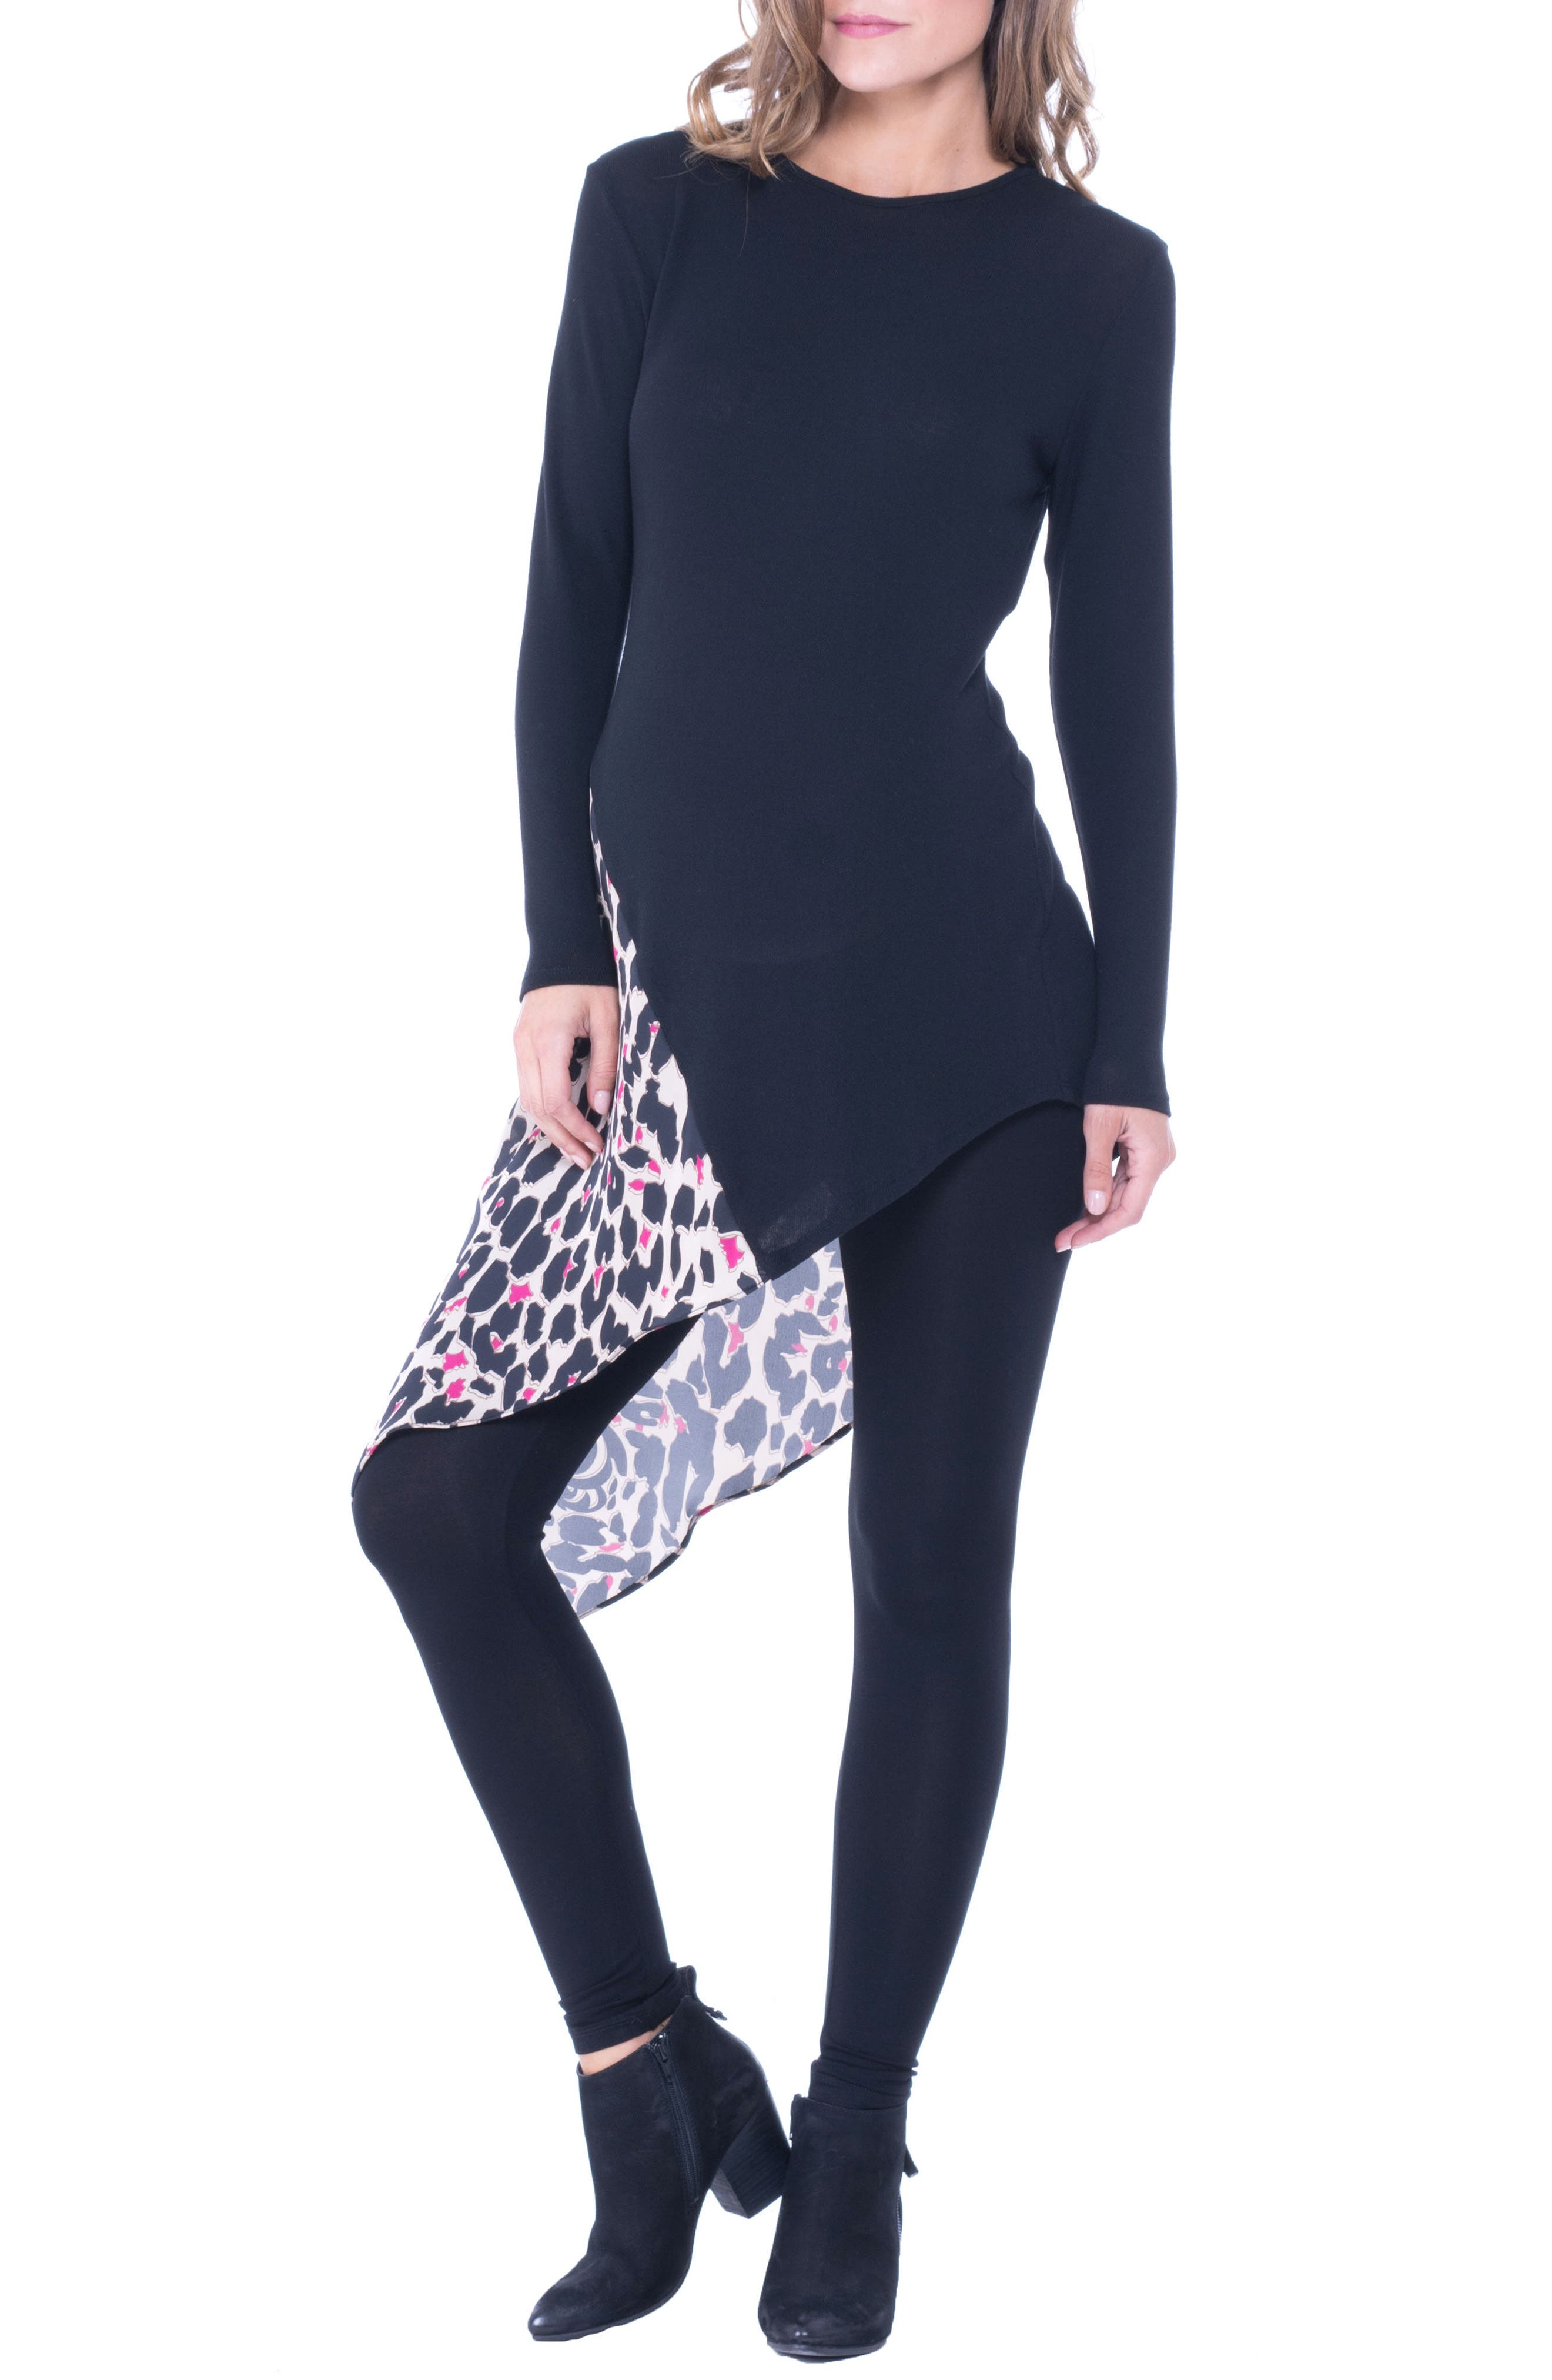 Main Image - Olian Leah Animal Print Side Tie Maternity Top